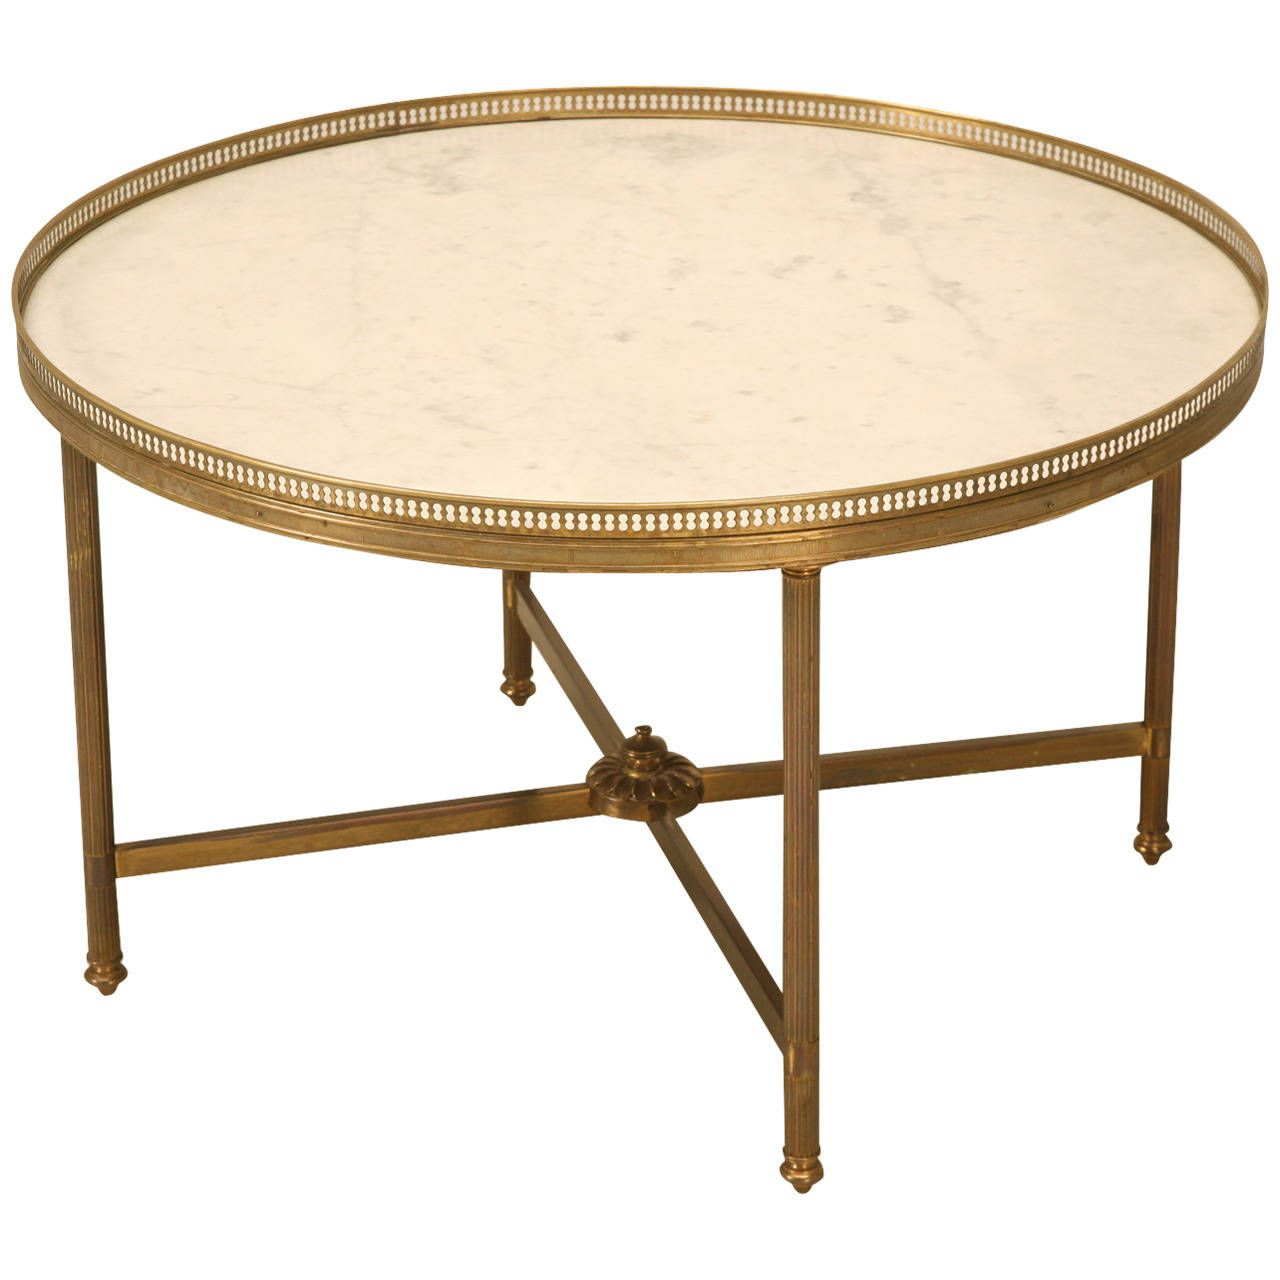 16+ Vintage marble coffee table for sale ideas